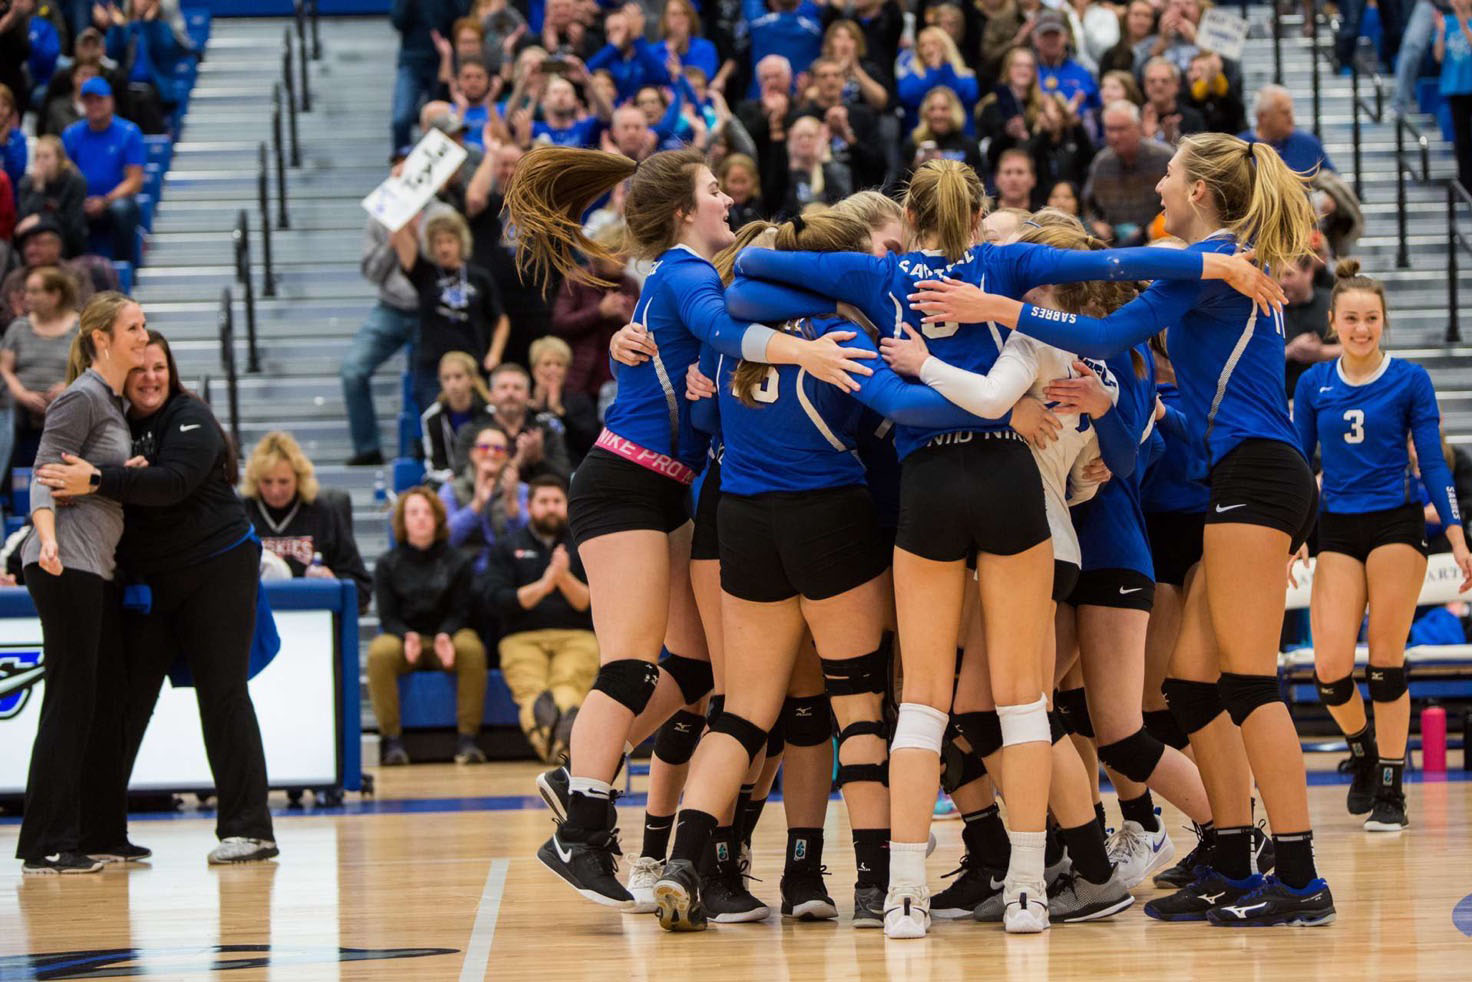 The volleyball team and coaches celebrating after huge victory in the sections semifinals against Alexandria.